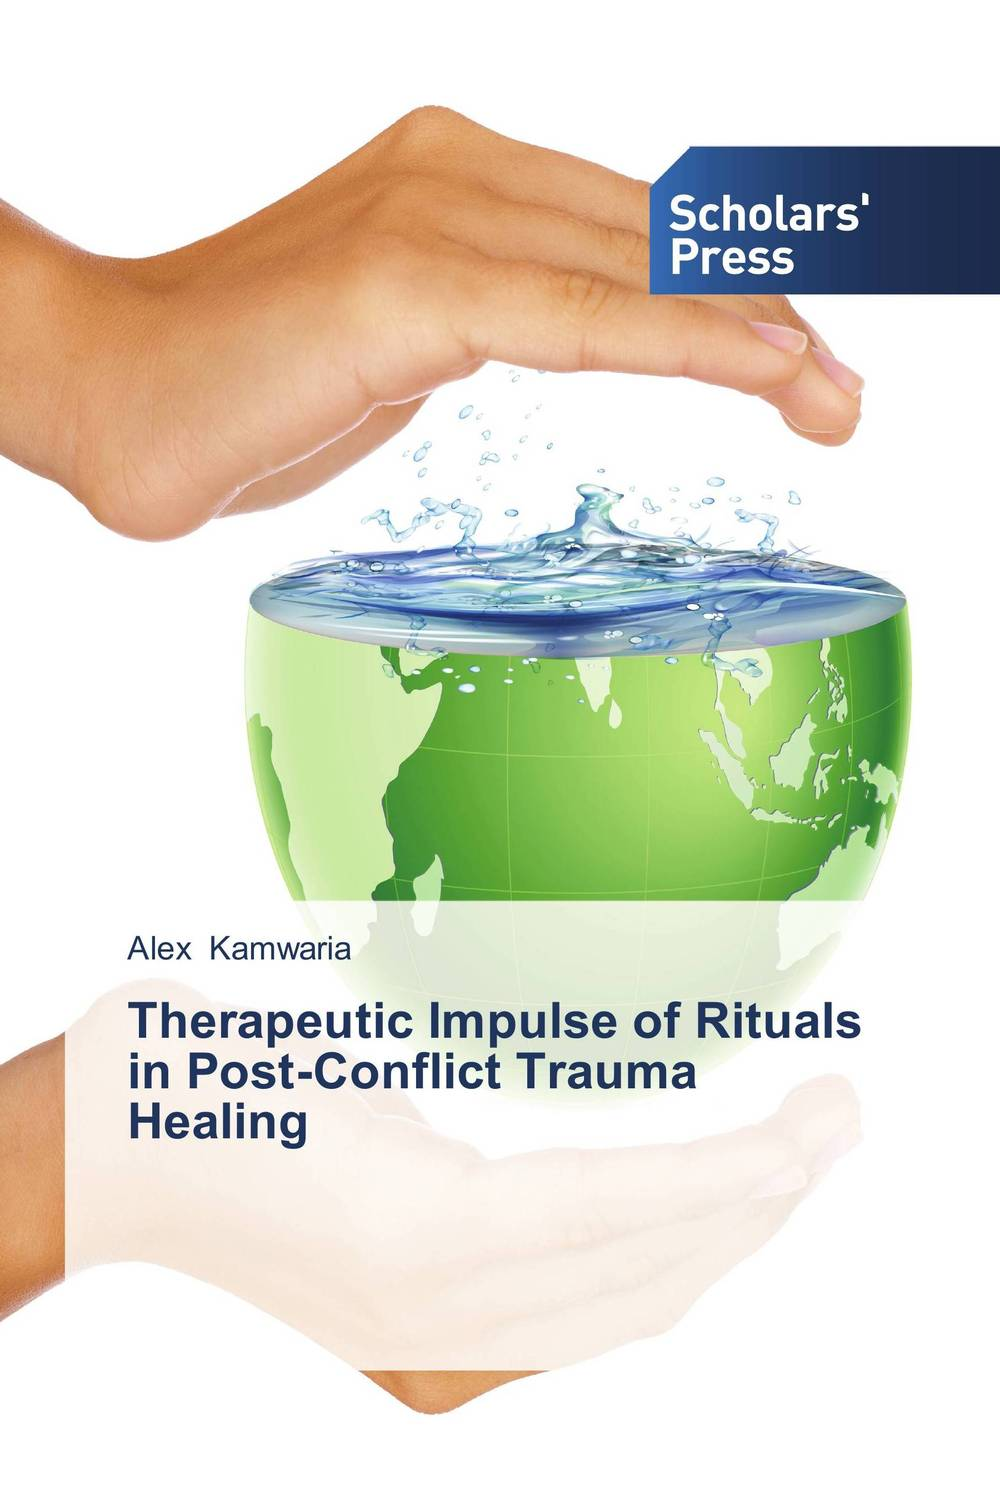 Therapeutic Impulse of Rituals in Post-Conflict Trauma Healing trans border ethnic hegemony and political conflict in africa